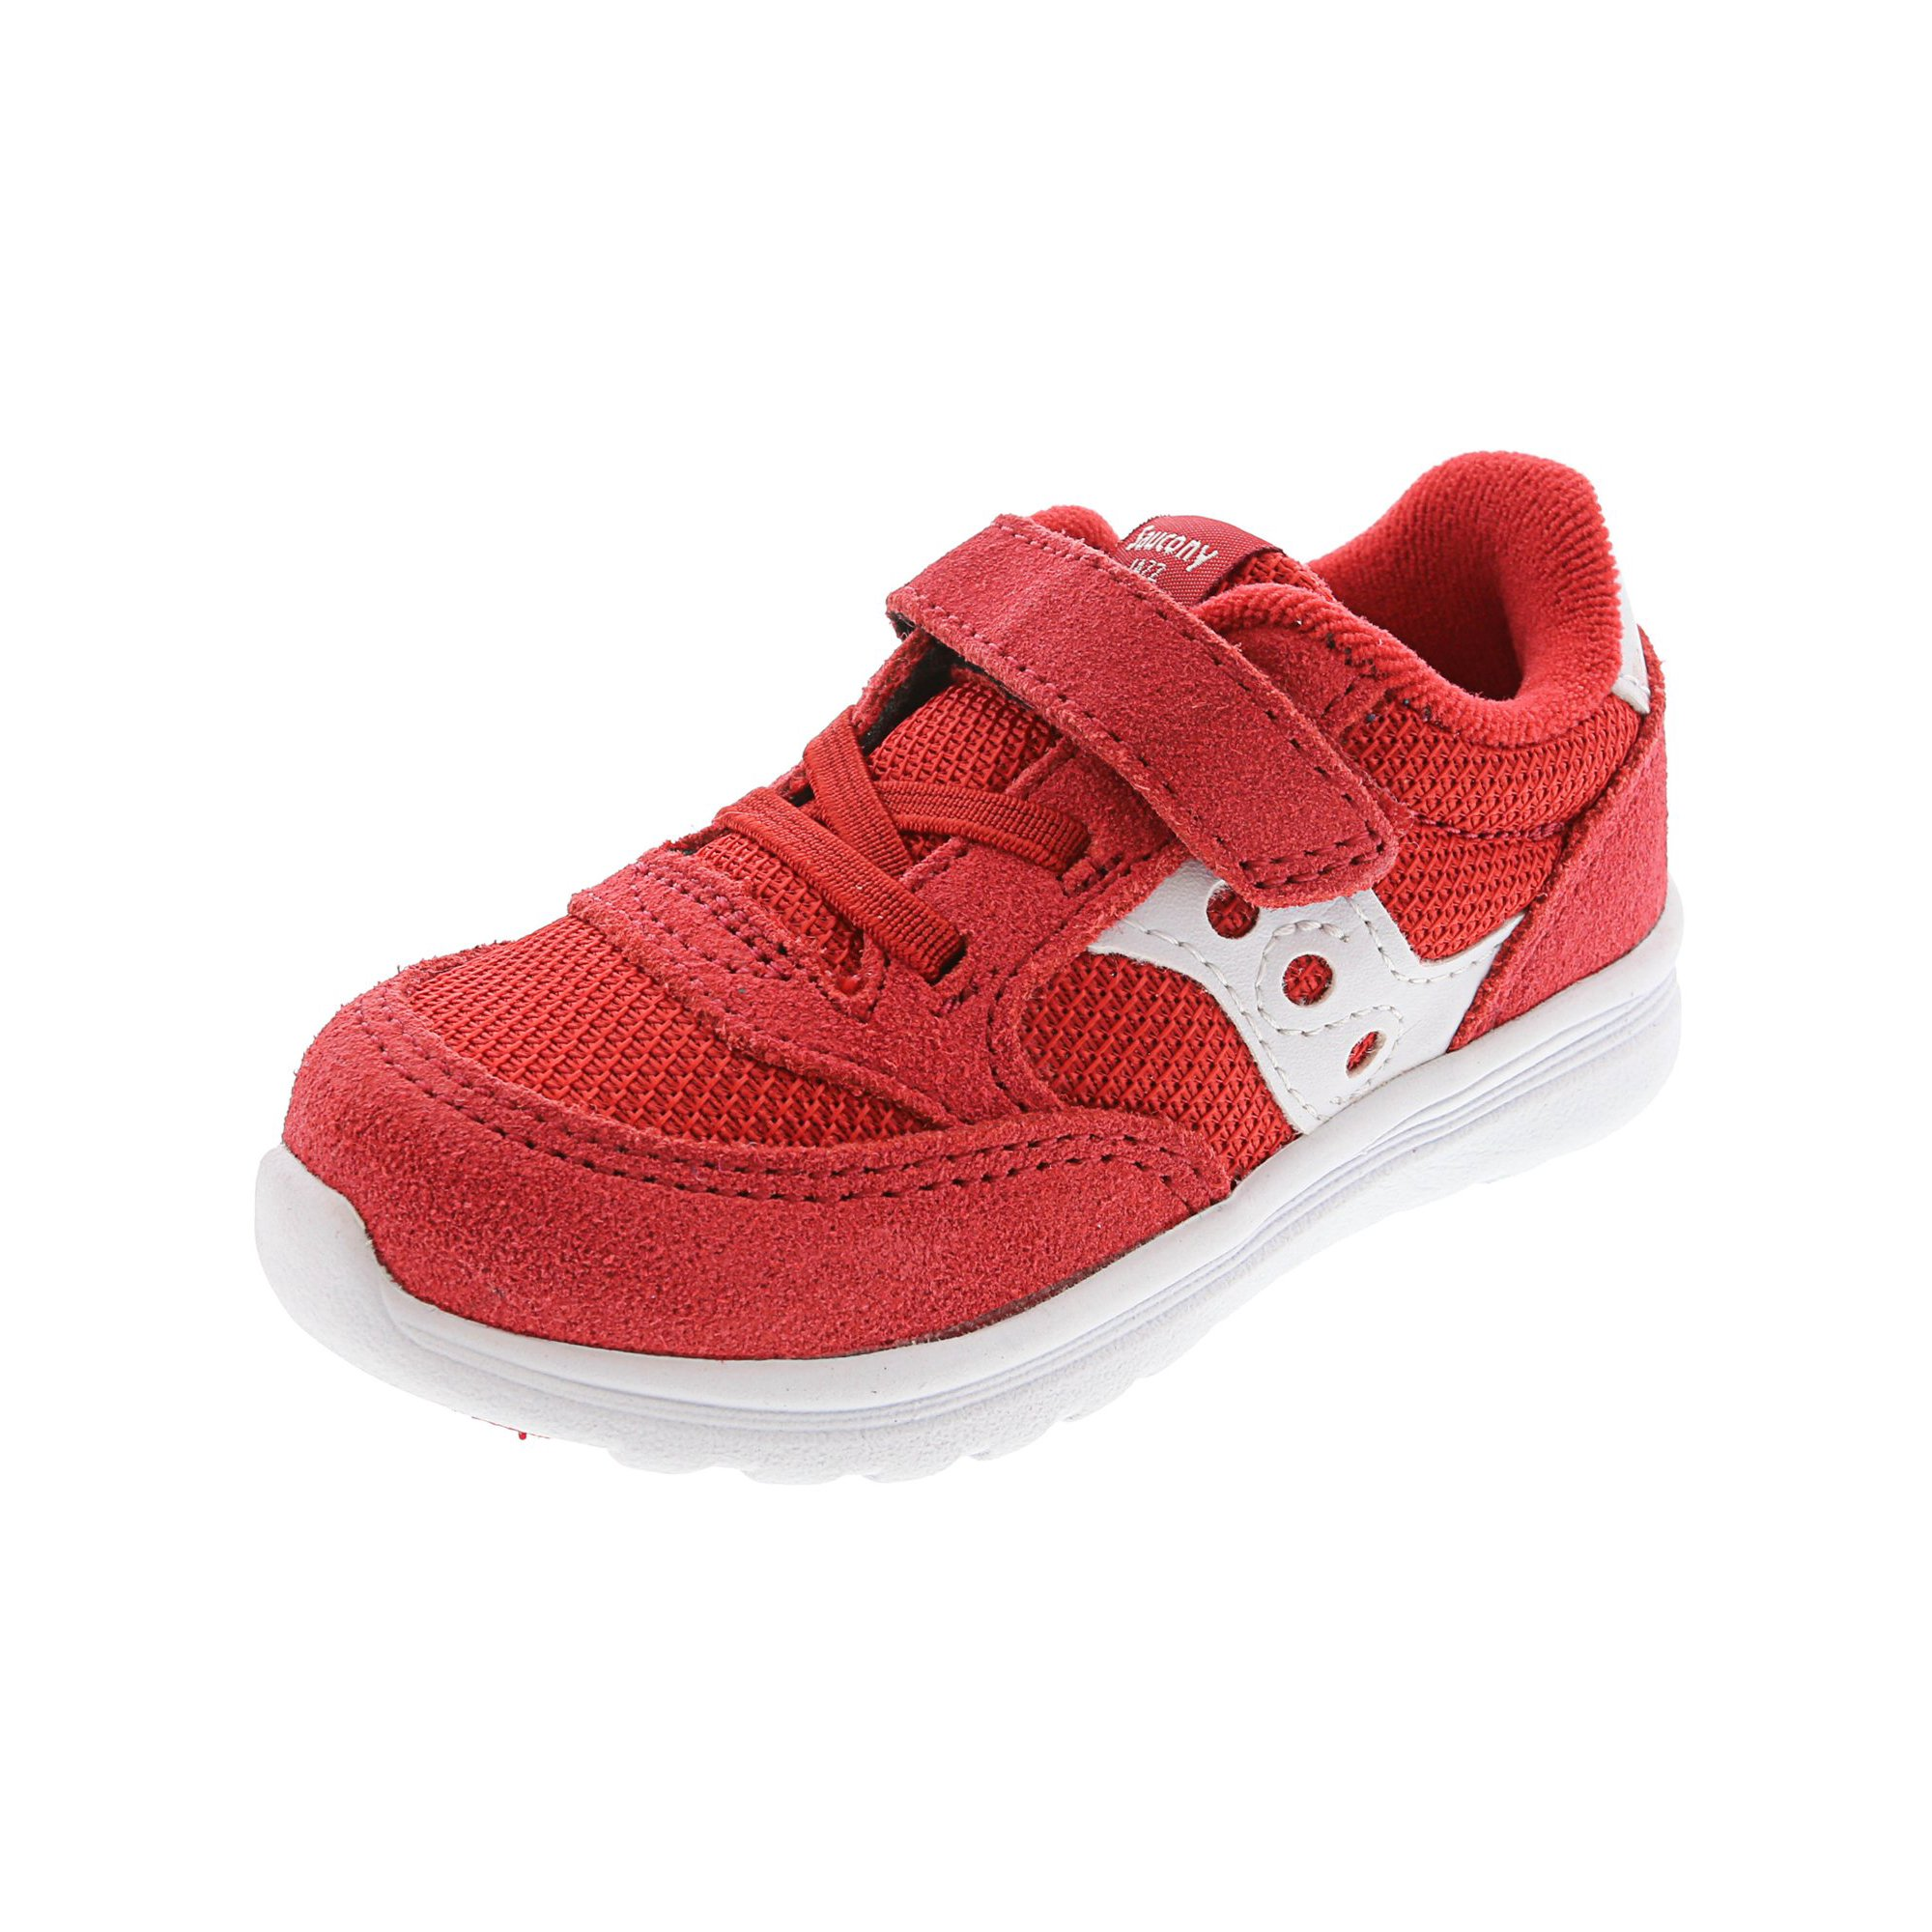 f2d933e8 Saucony Boy's Jazz Lite Red Ankle-High Suede Fashion Sneaker - 5.5M ...